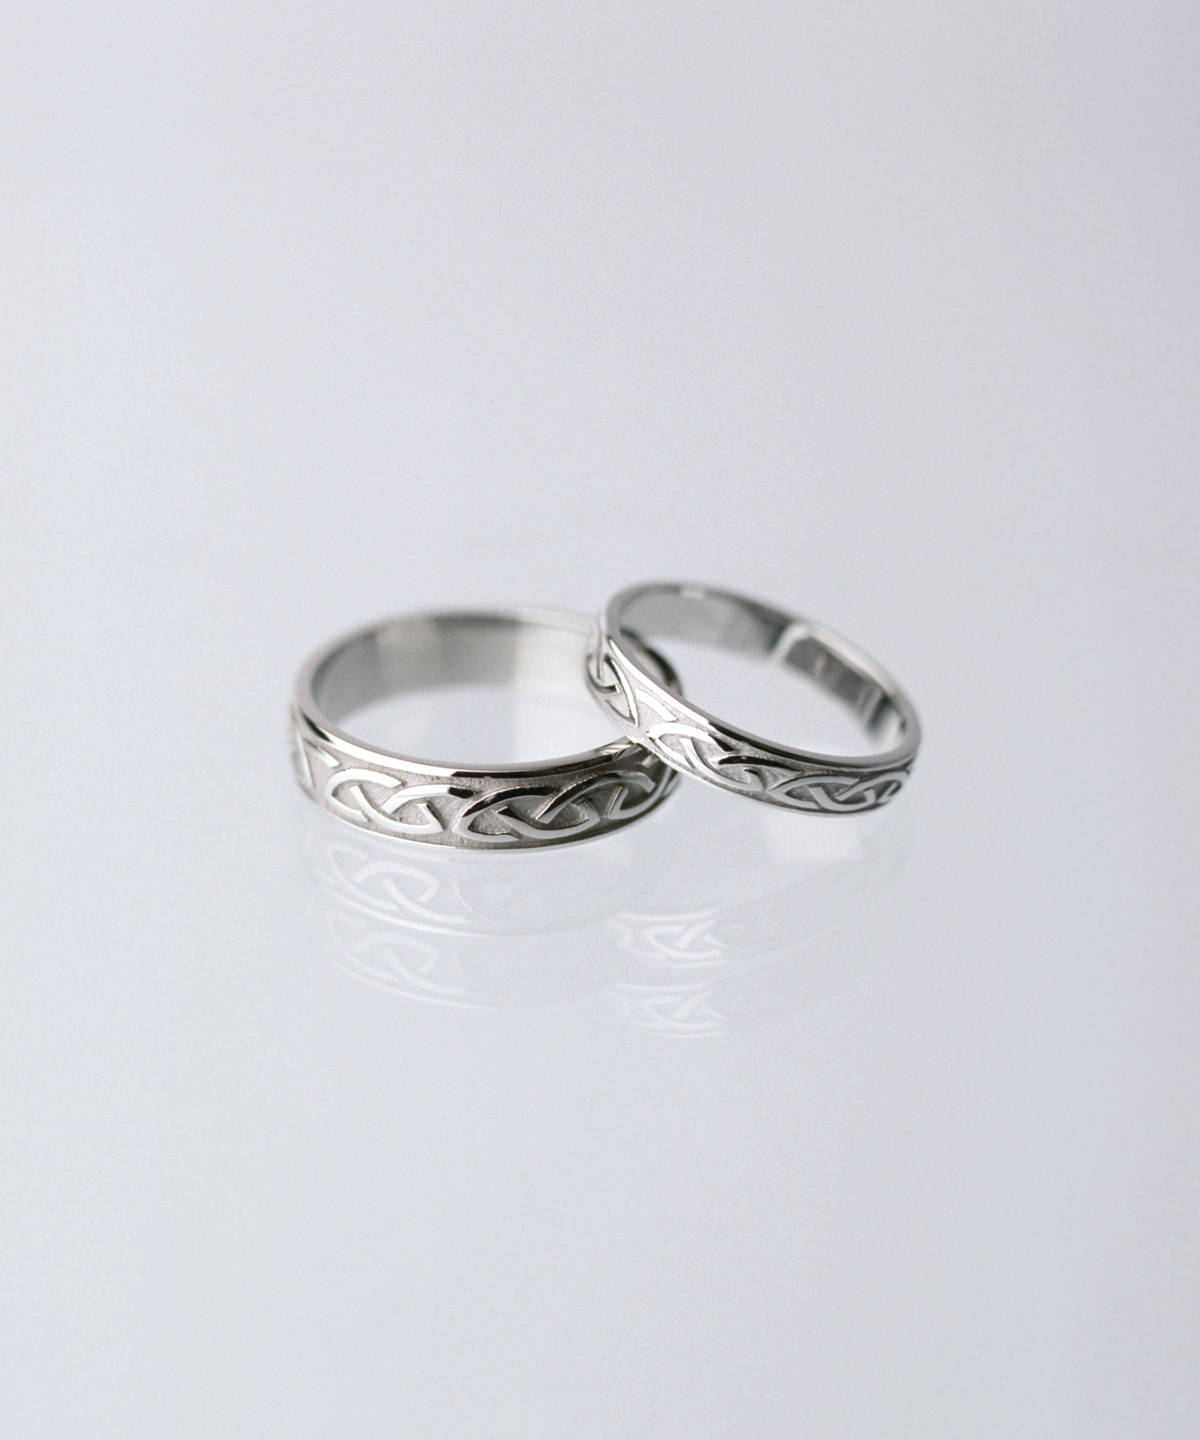 18 carat white gold man's Celtic love knot ring 3.6mmPlease note the man's ring is on the left.